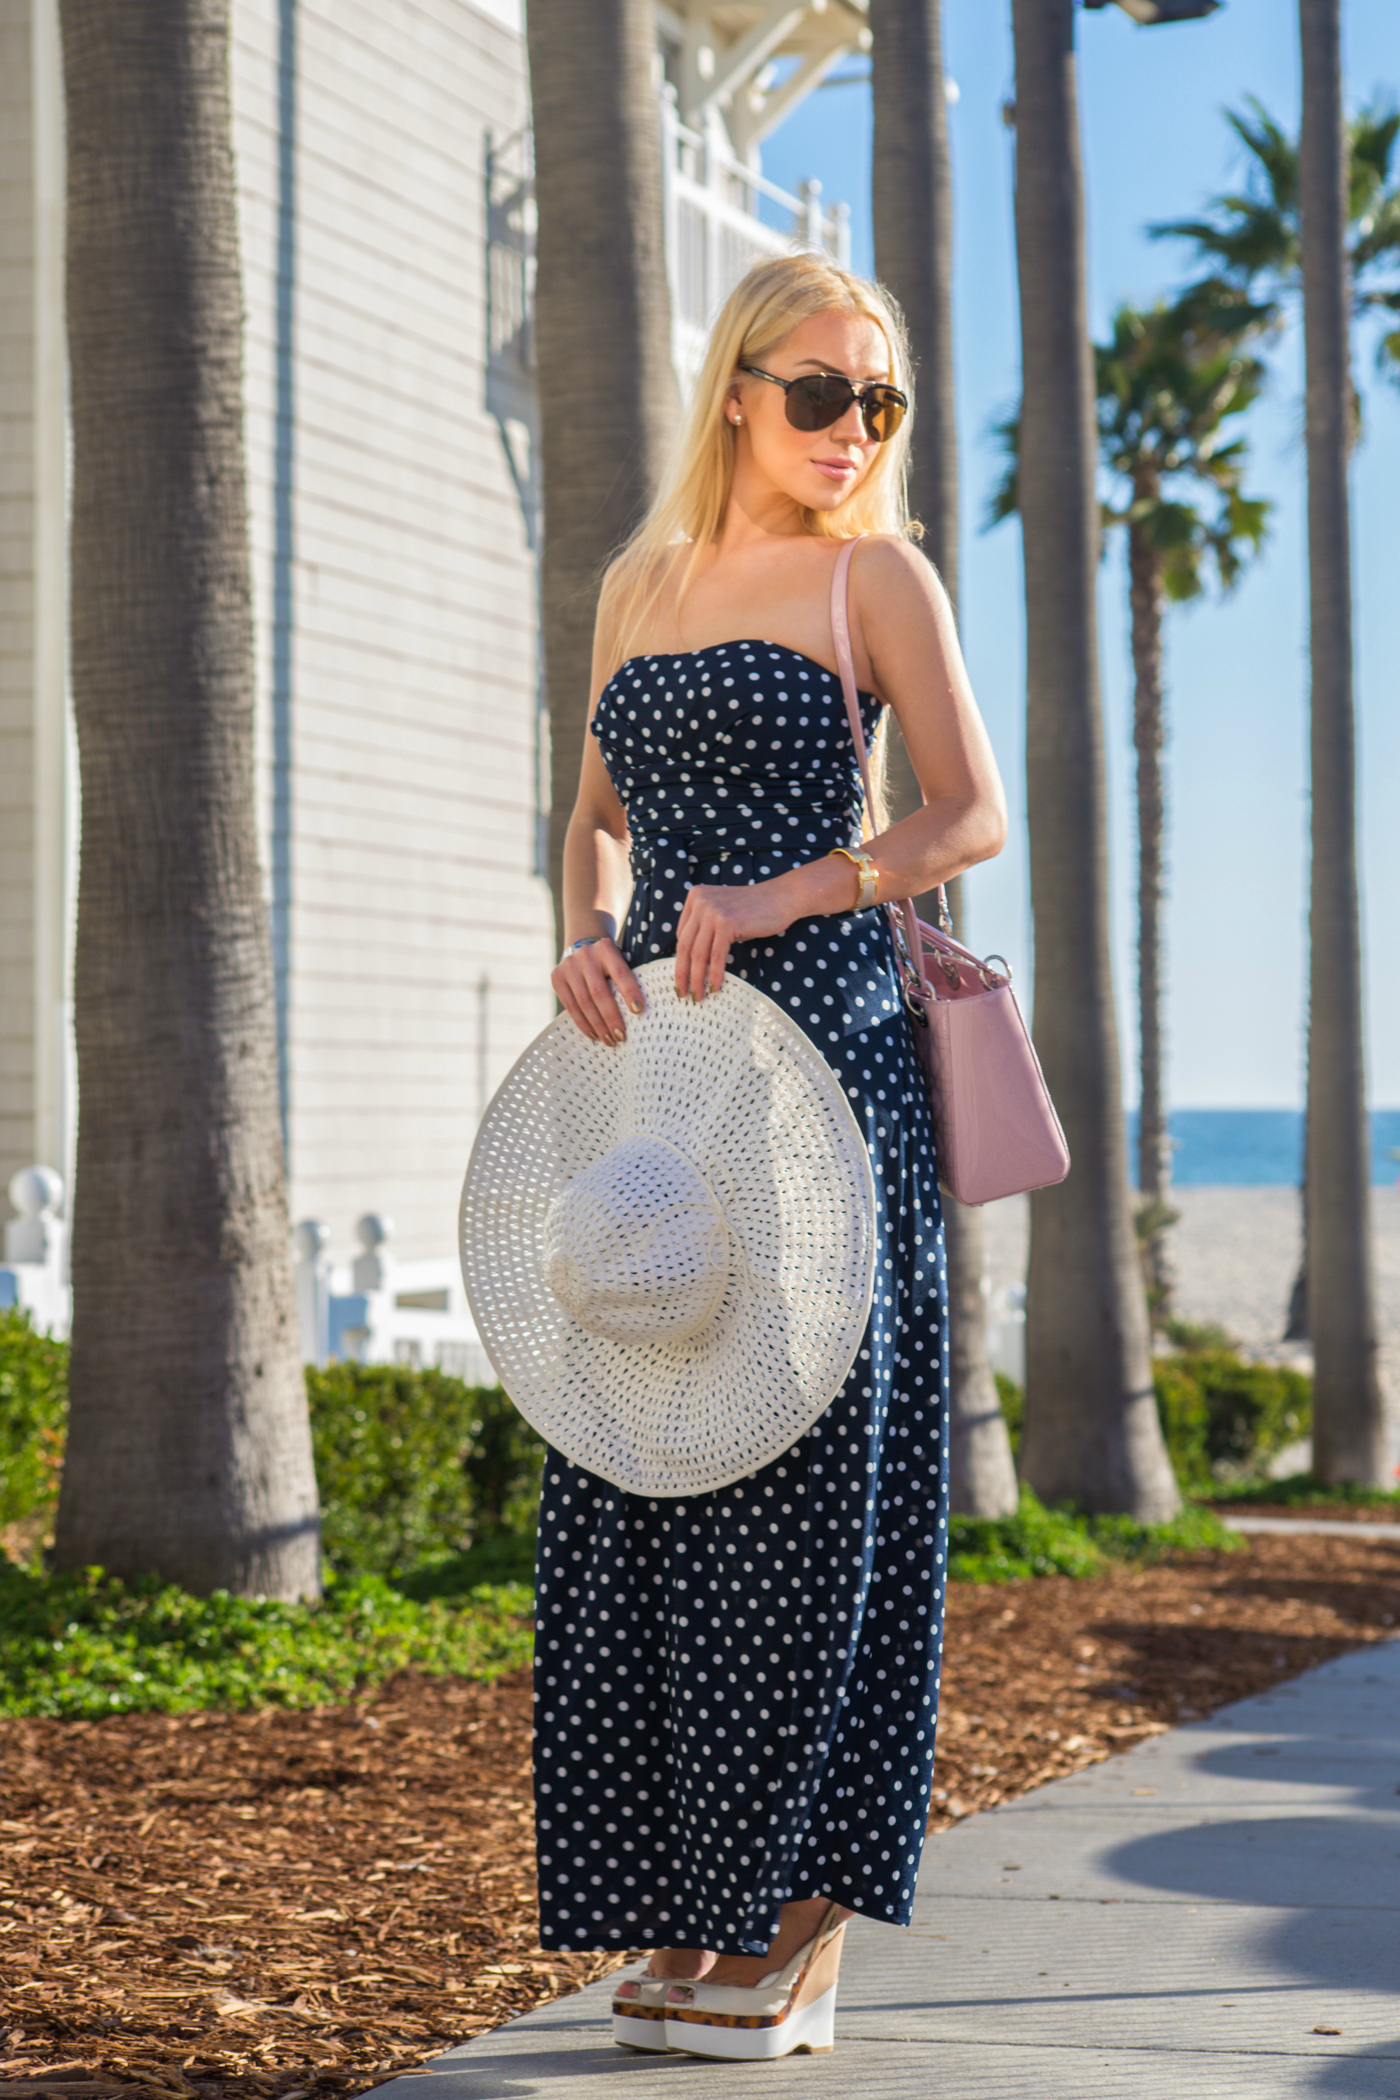 beach outfit 2014,beach outfit inspiration,H&M hat,polka dot maxi dress,what to wear to the coast,brunch outfit inspiration,gucci shoes,dior bag